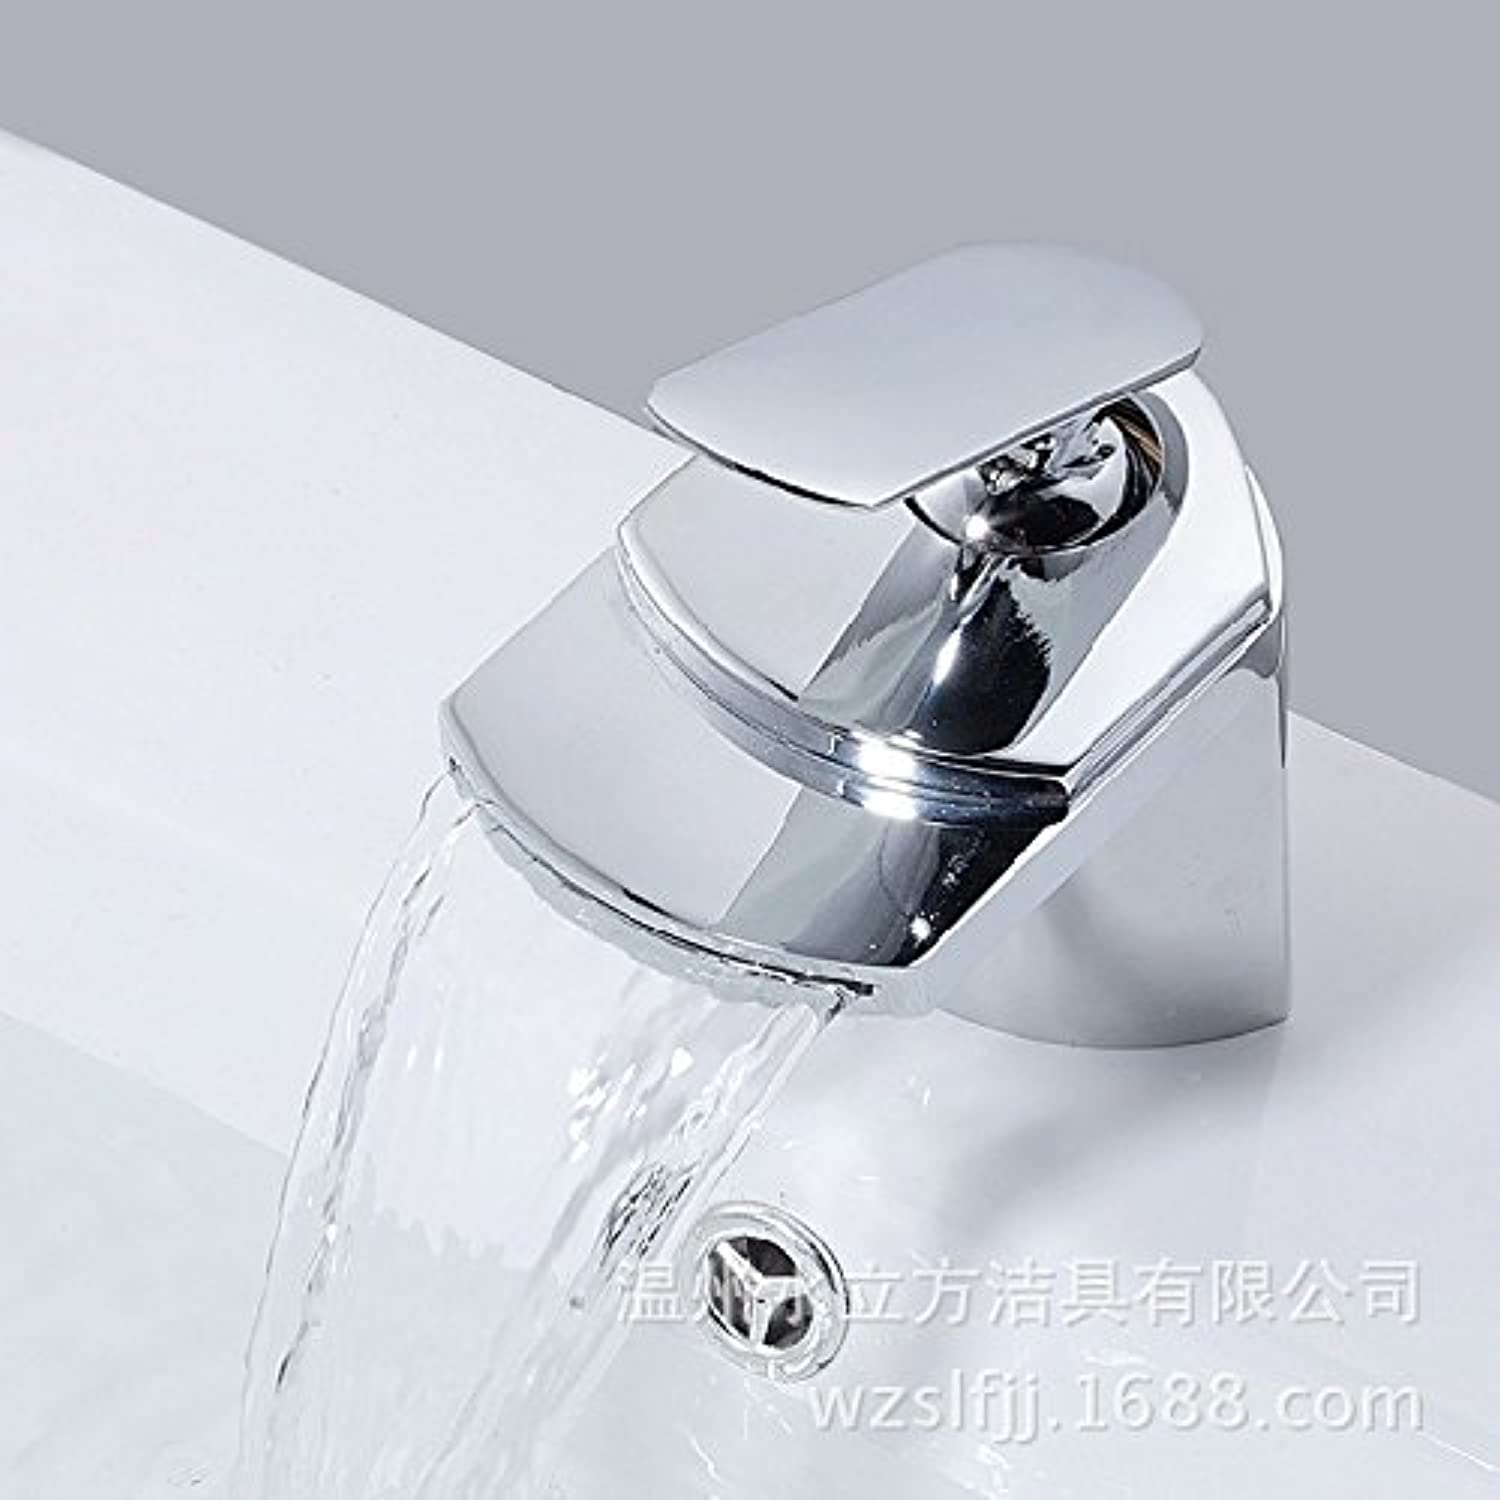 Basin faucet, wide mouth waterfall, hot and cold faucet, bathroom, basin faucet